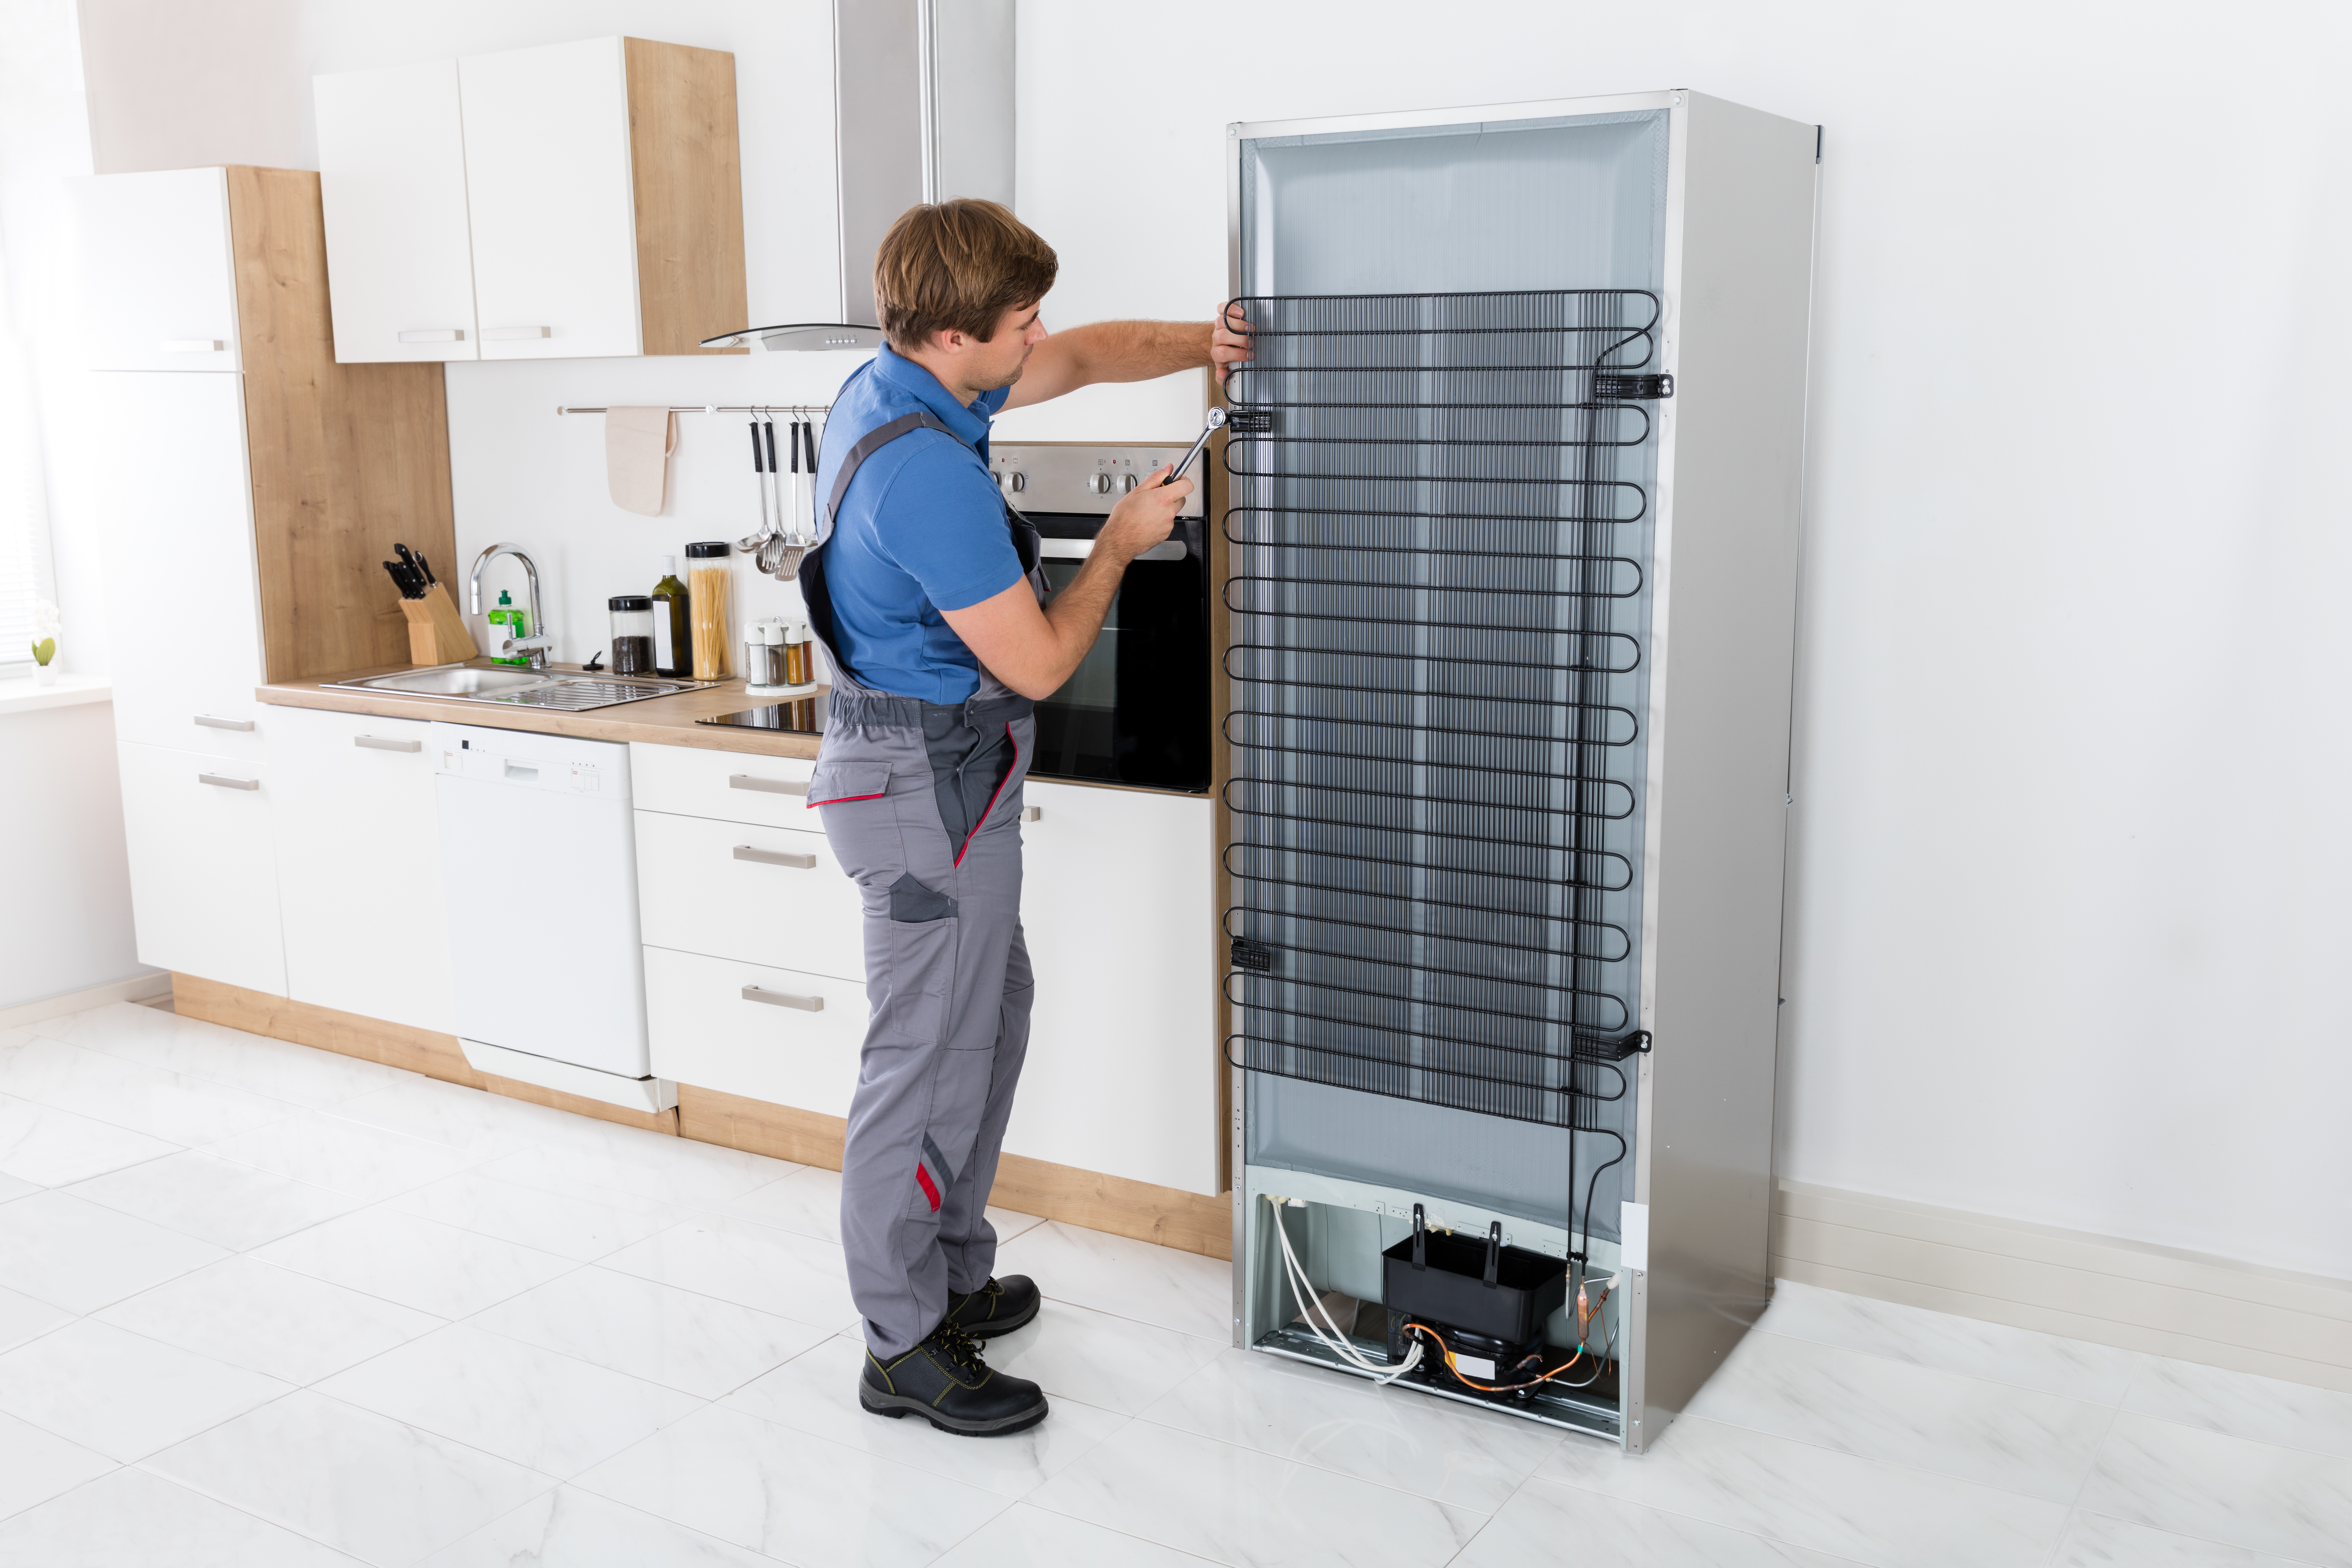 How to Know When Your Refrigerator Is Broken | Home Guides